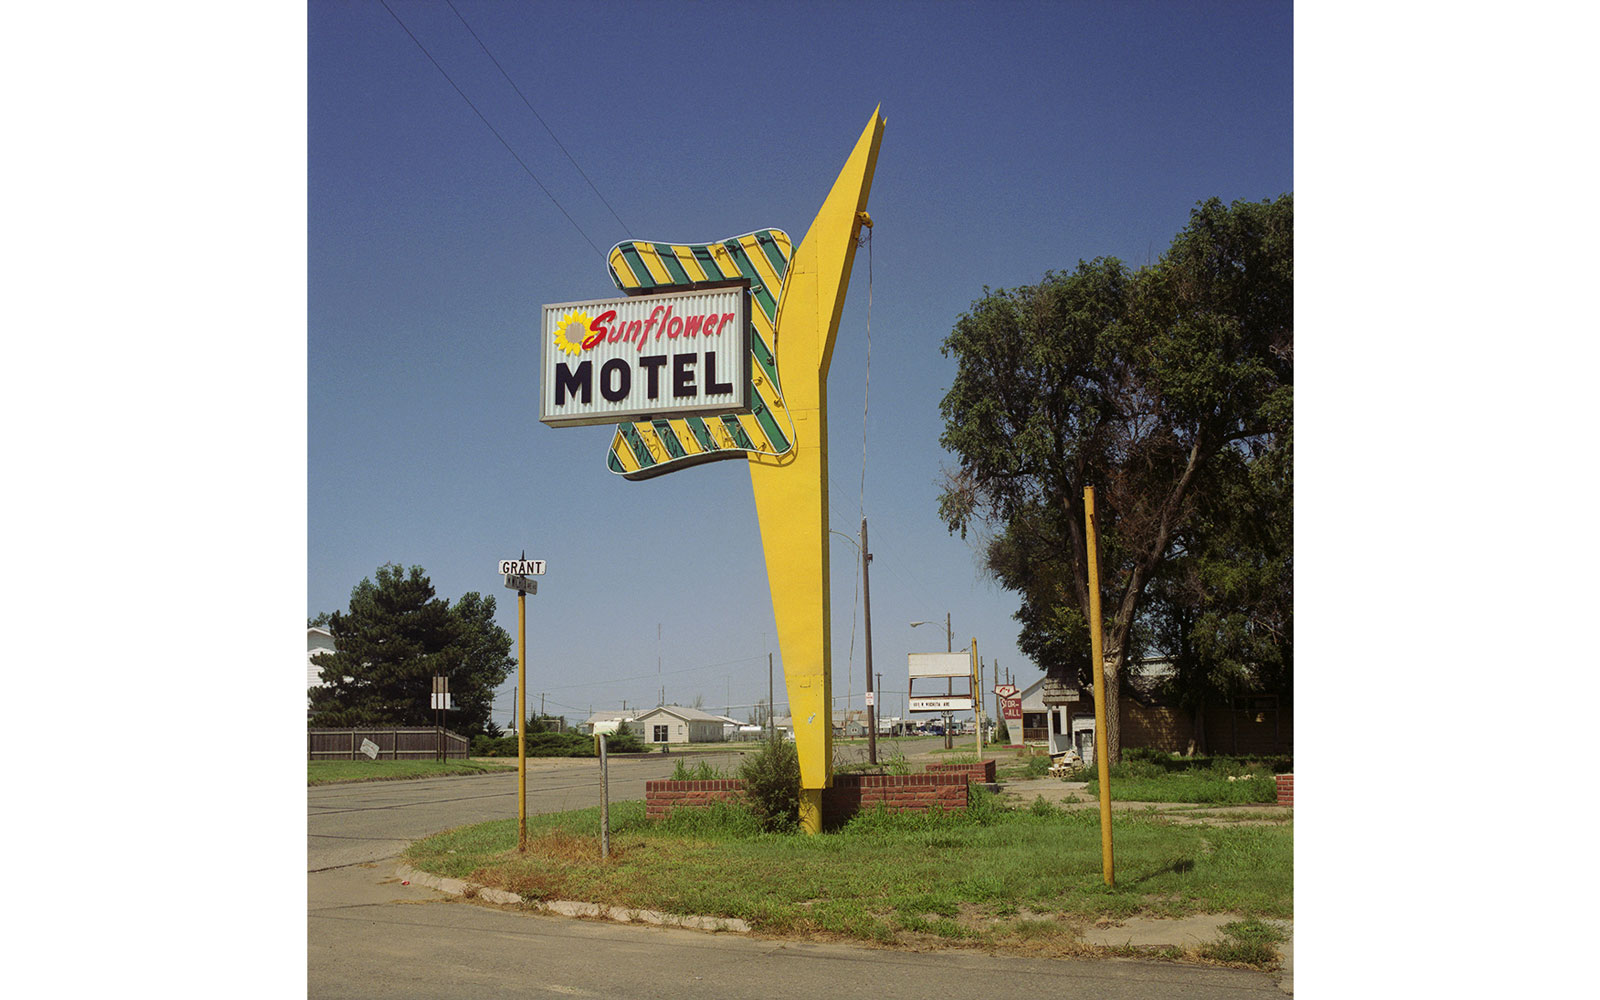 Sunflower Motel